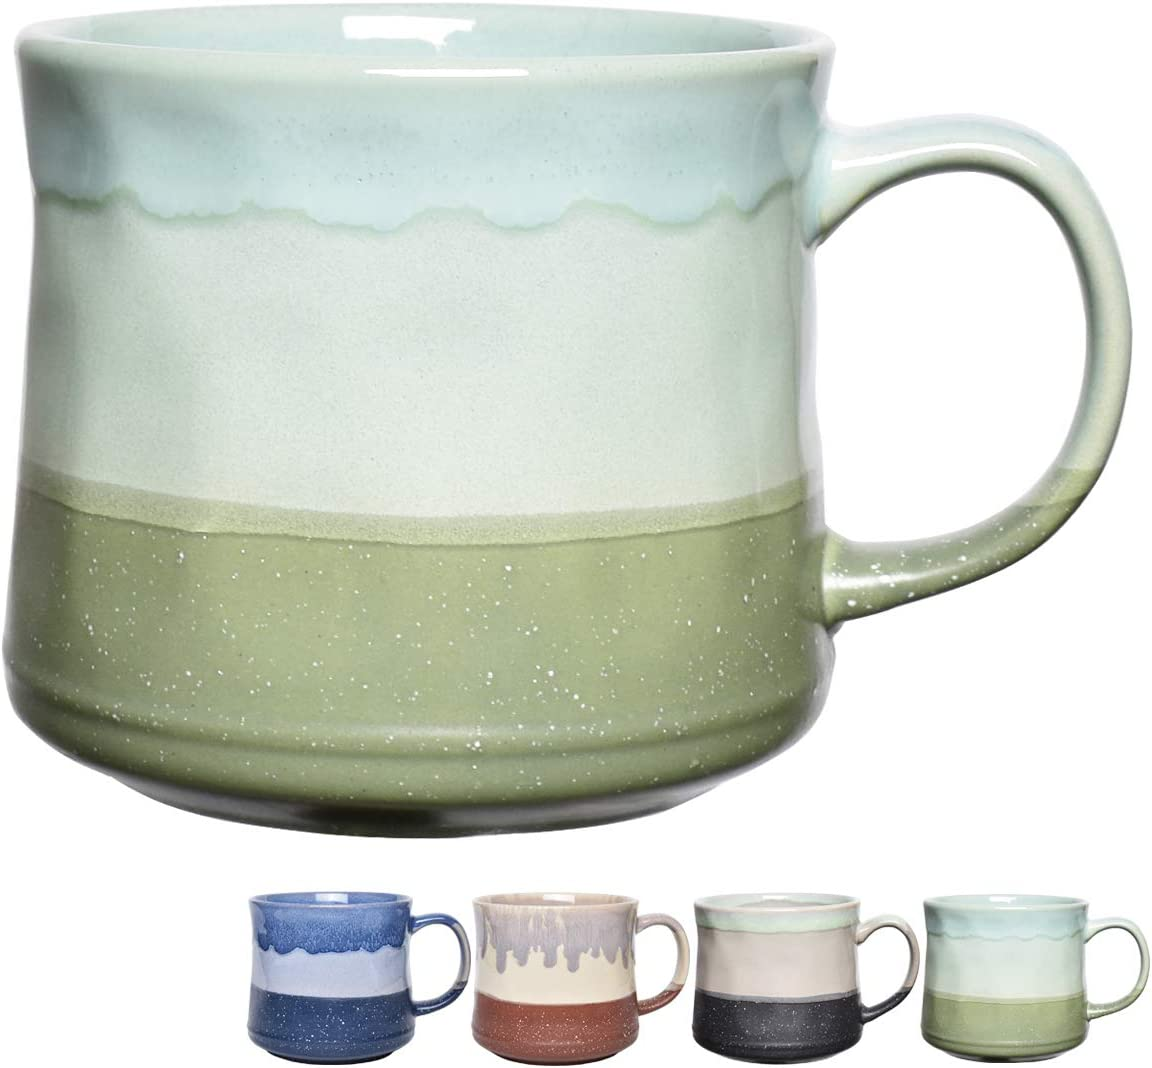 Bosmarlin Large Ceramic Coffee Mug, Big Tea Cup for Office and Home, 21 Oz, Dishwasher and Microwave Safe, 1 PCS (Green)